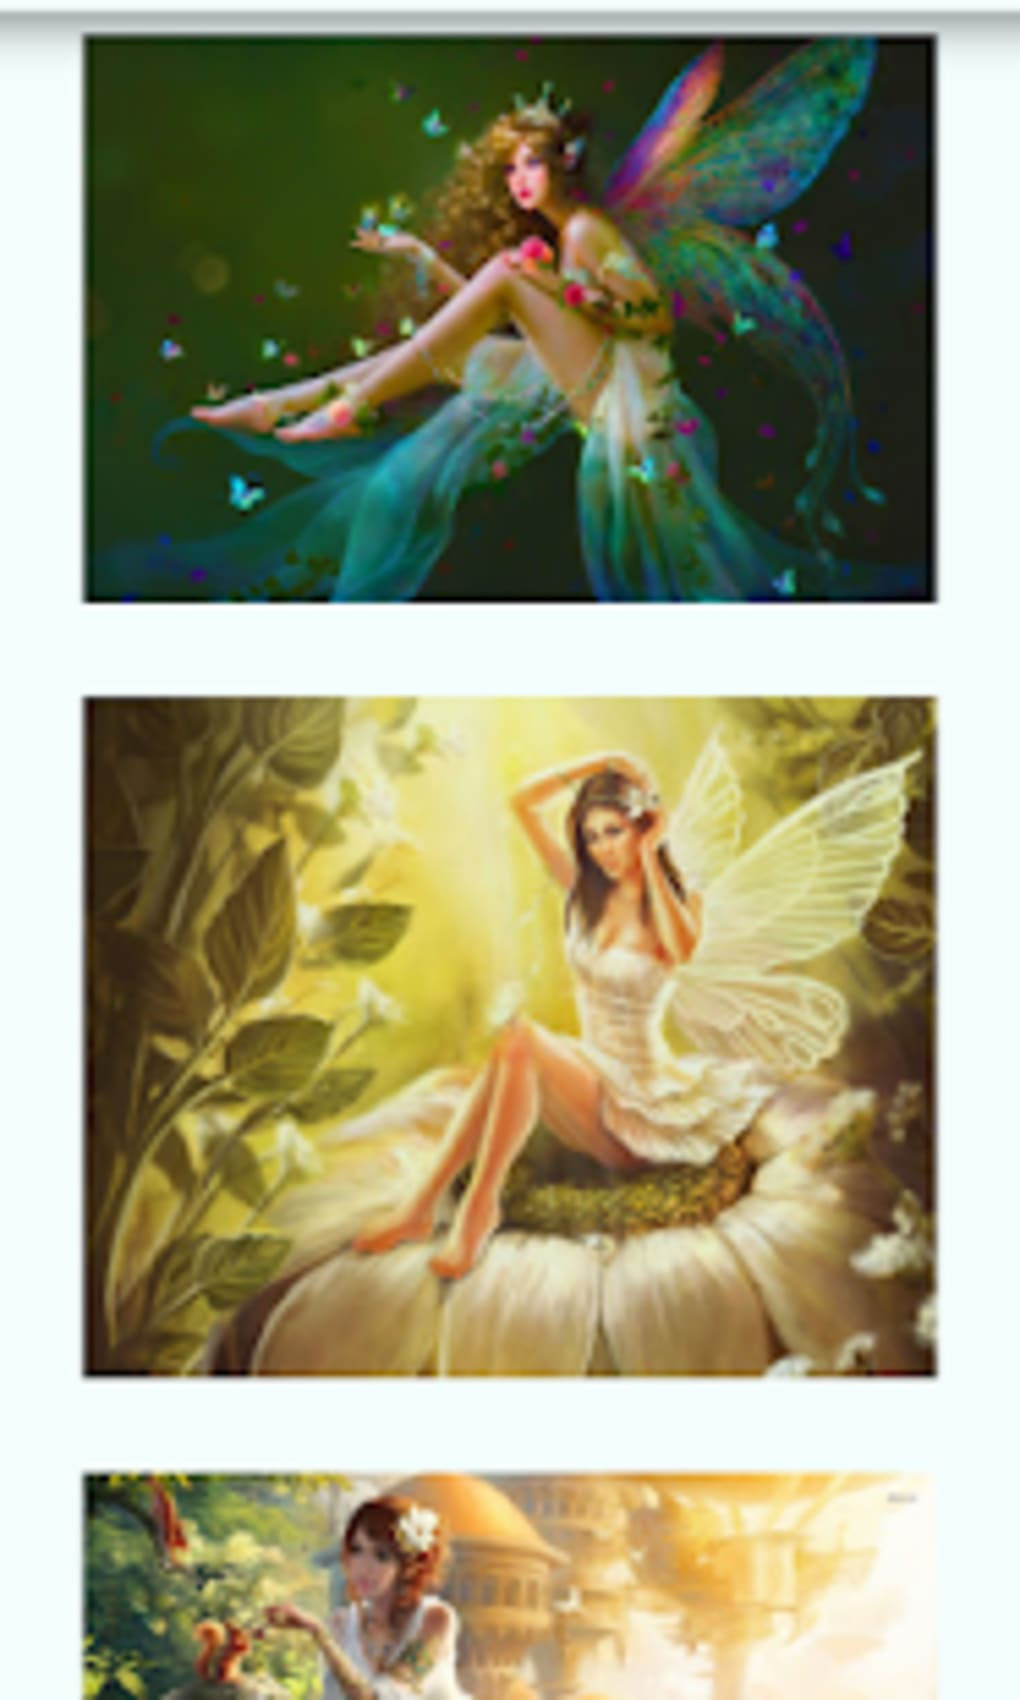 Fairy Images Wallpapers Apk For Android Download